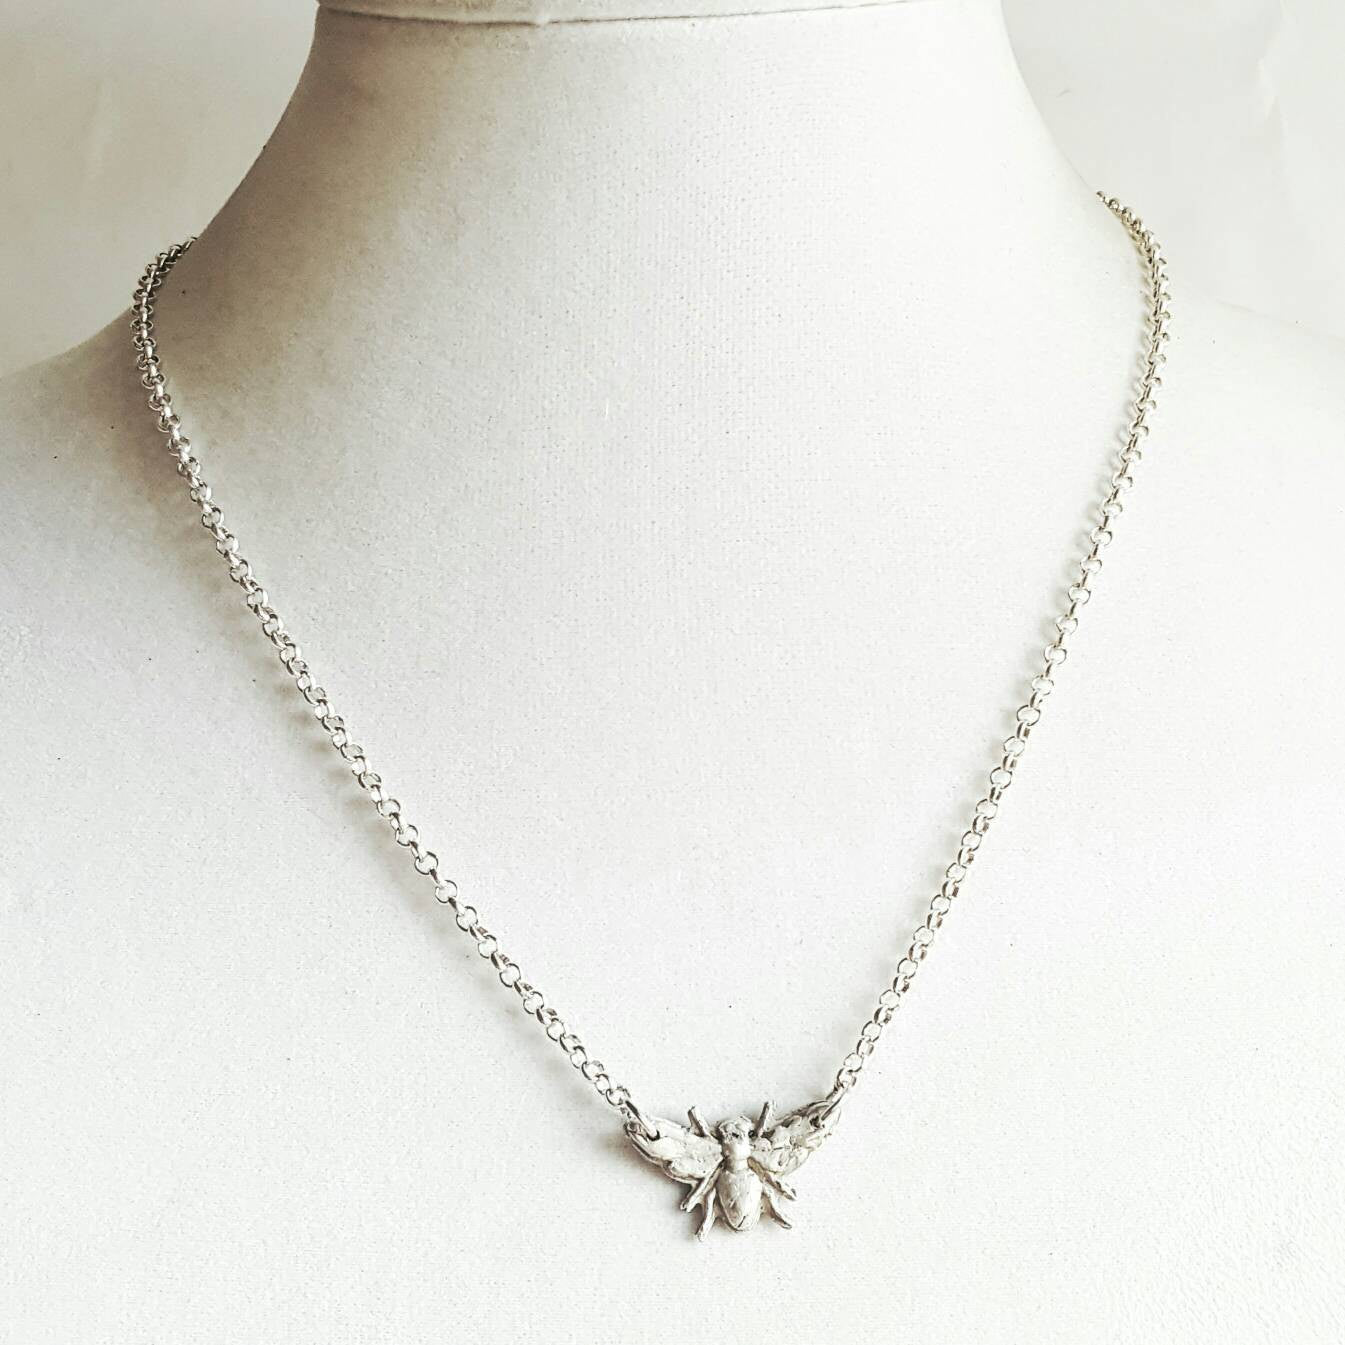 Queen Bee Necklace 925 Sterling Silver Jewelry - DRAVYNMOOR